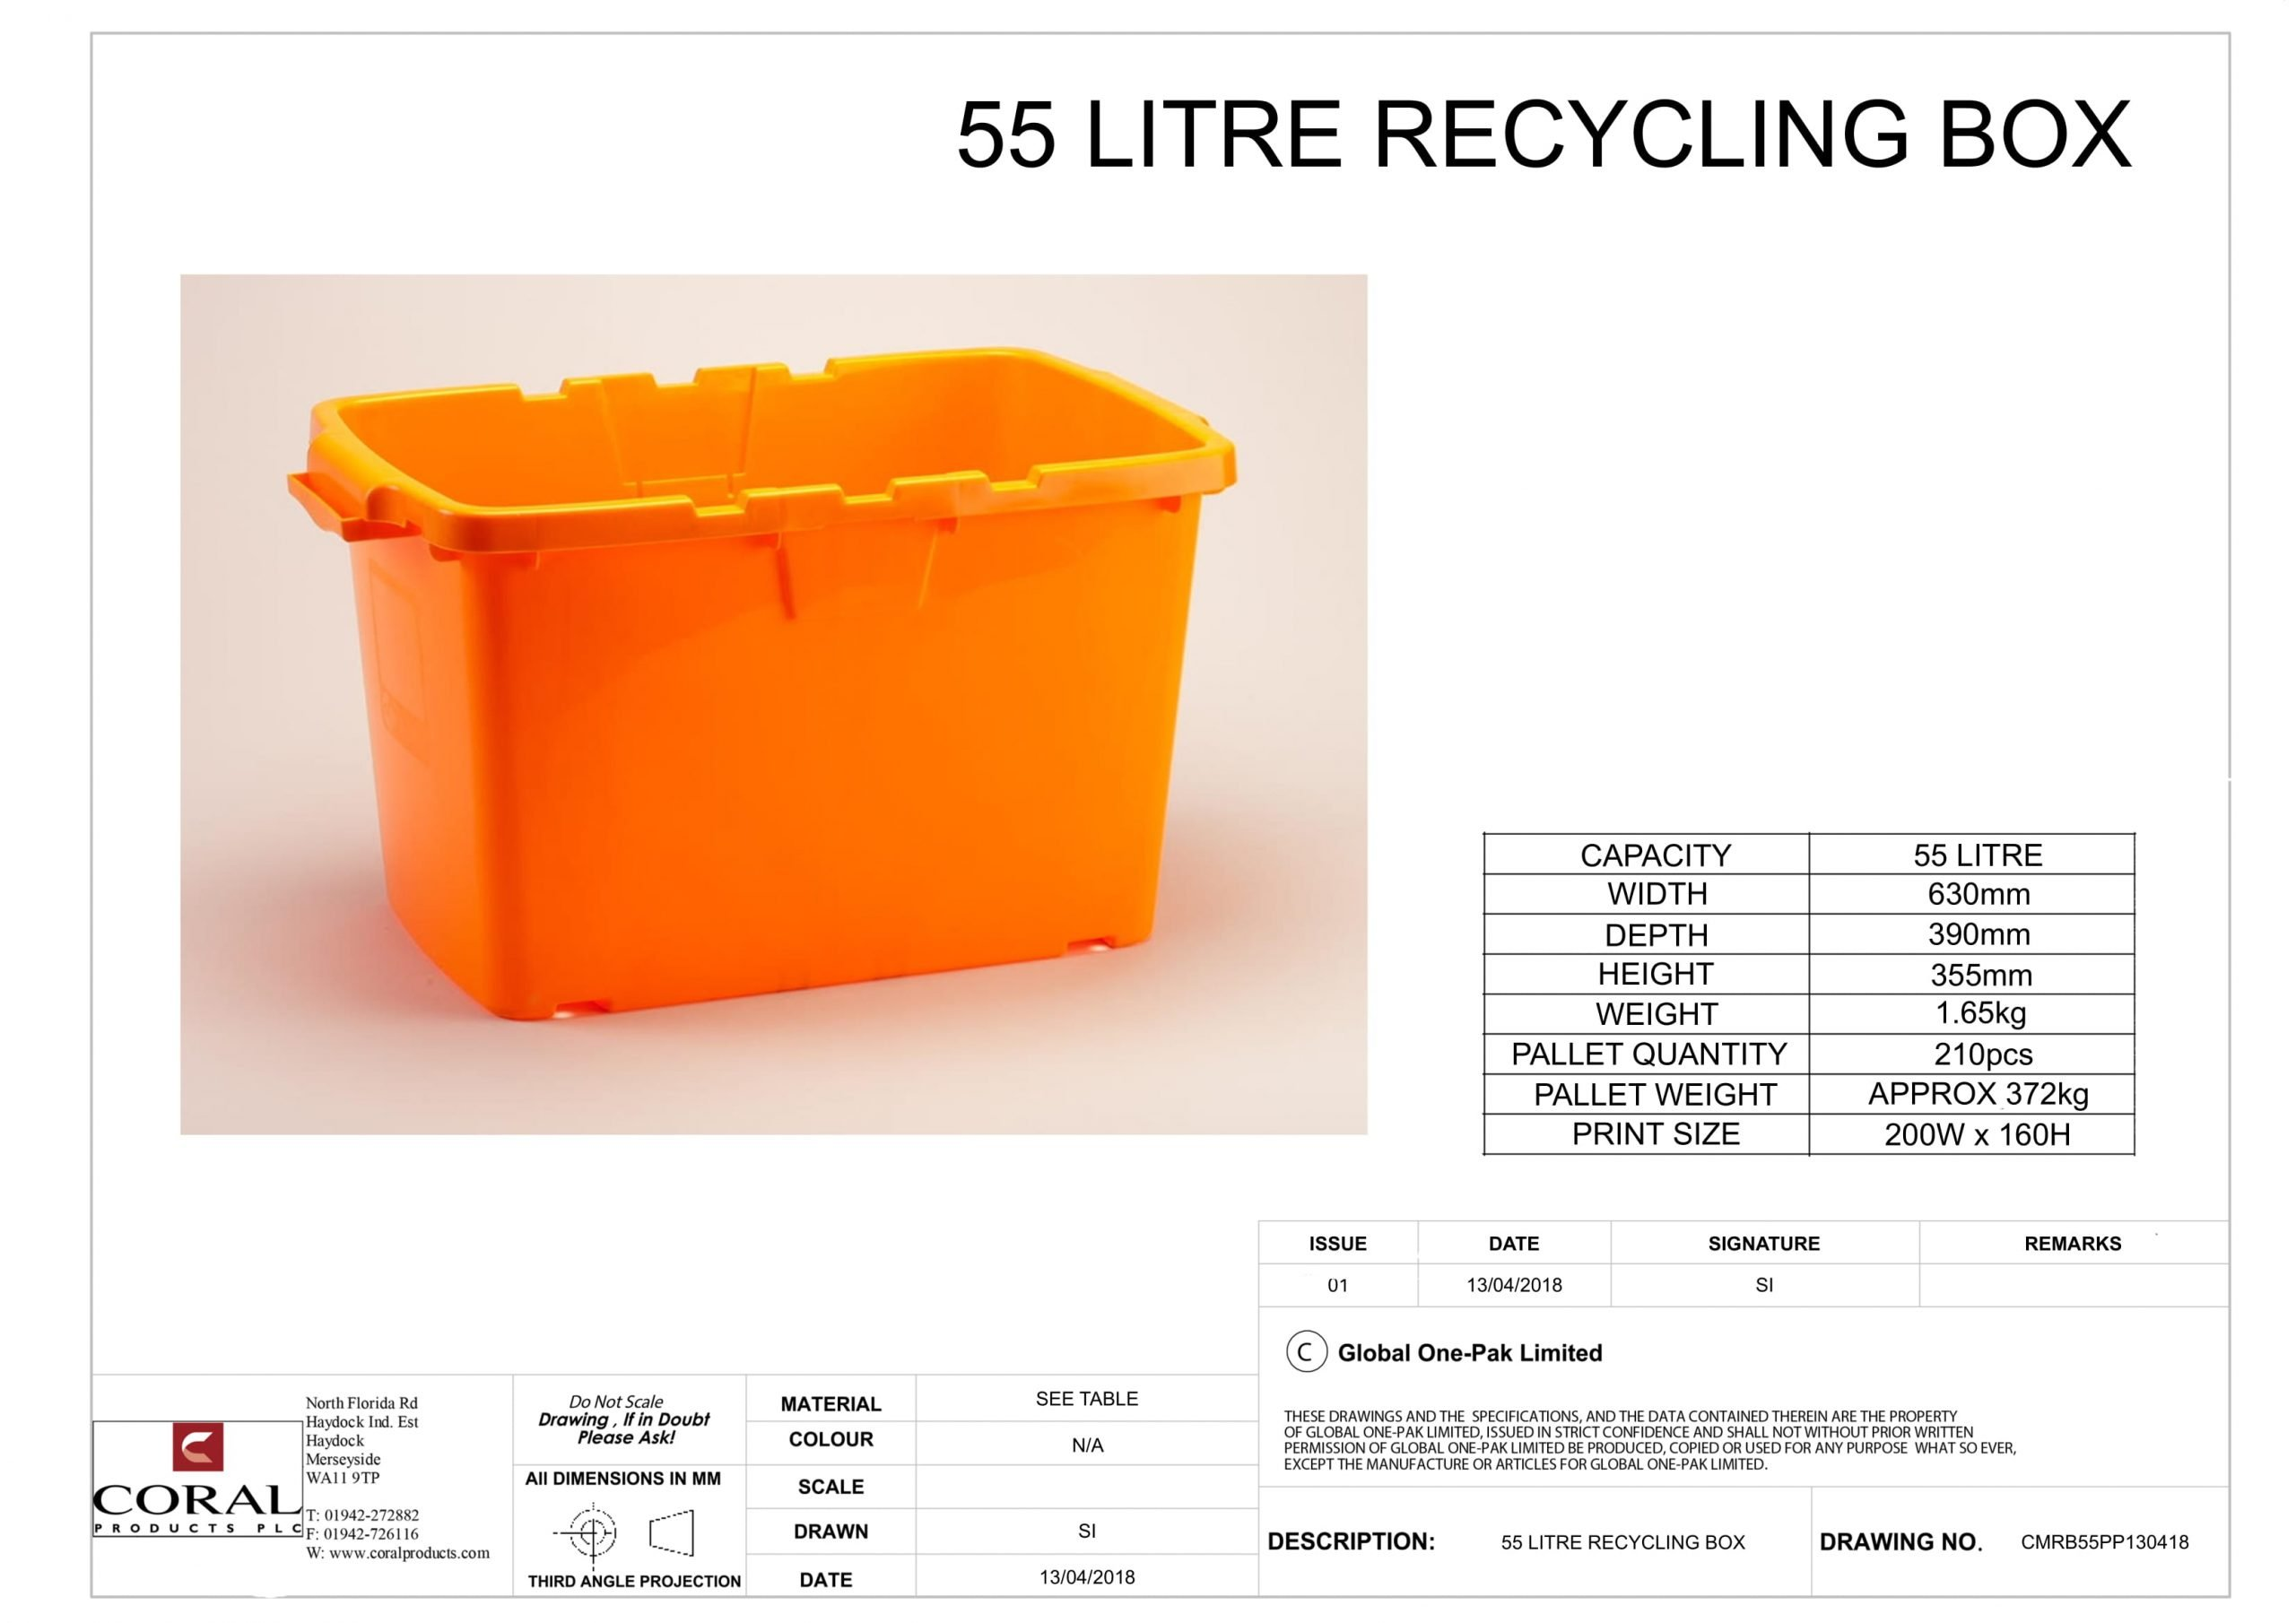 55 Litre Recycling Box Data Sheet 1 scaled